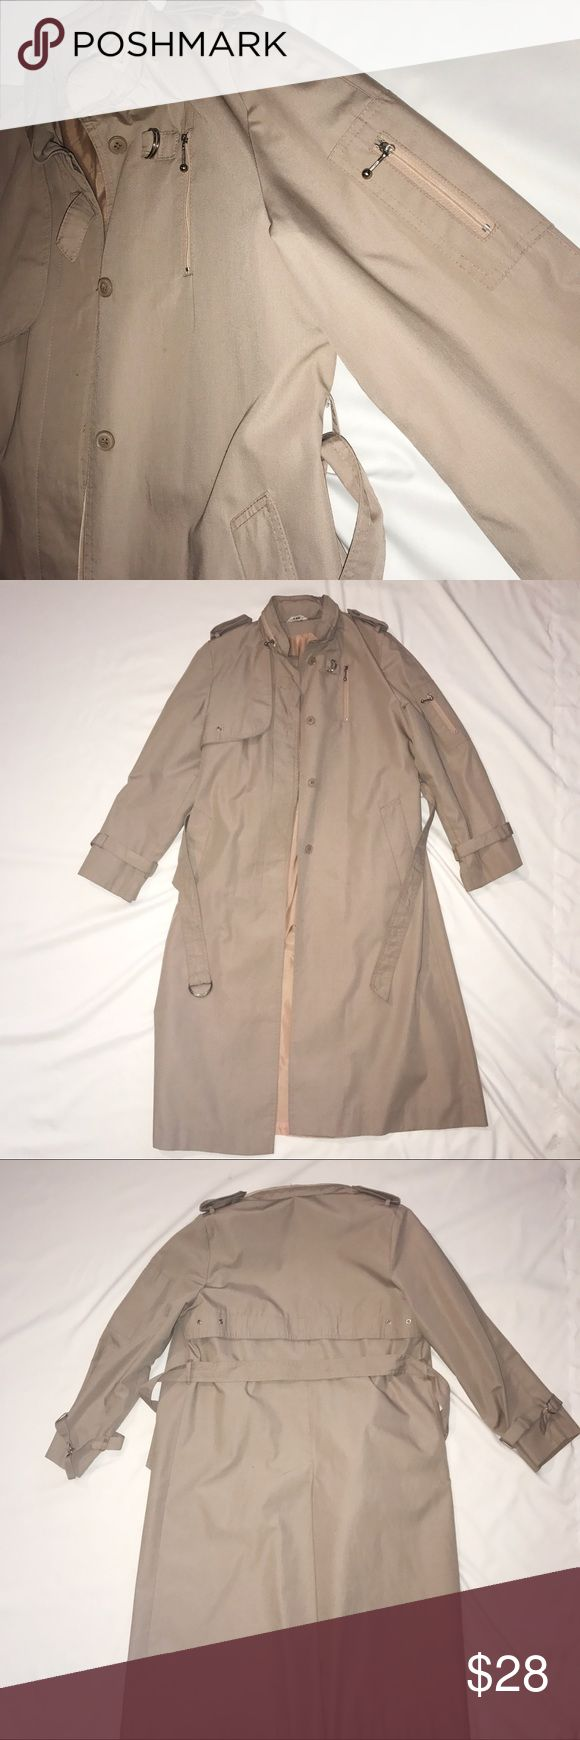 Women's trench coat Vintage women's trench coat with hood that rolls up and zips into collar. Beautiful, great quality coat. Size 9/10 Jackets & Coats Trench Coats